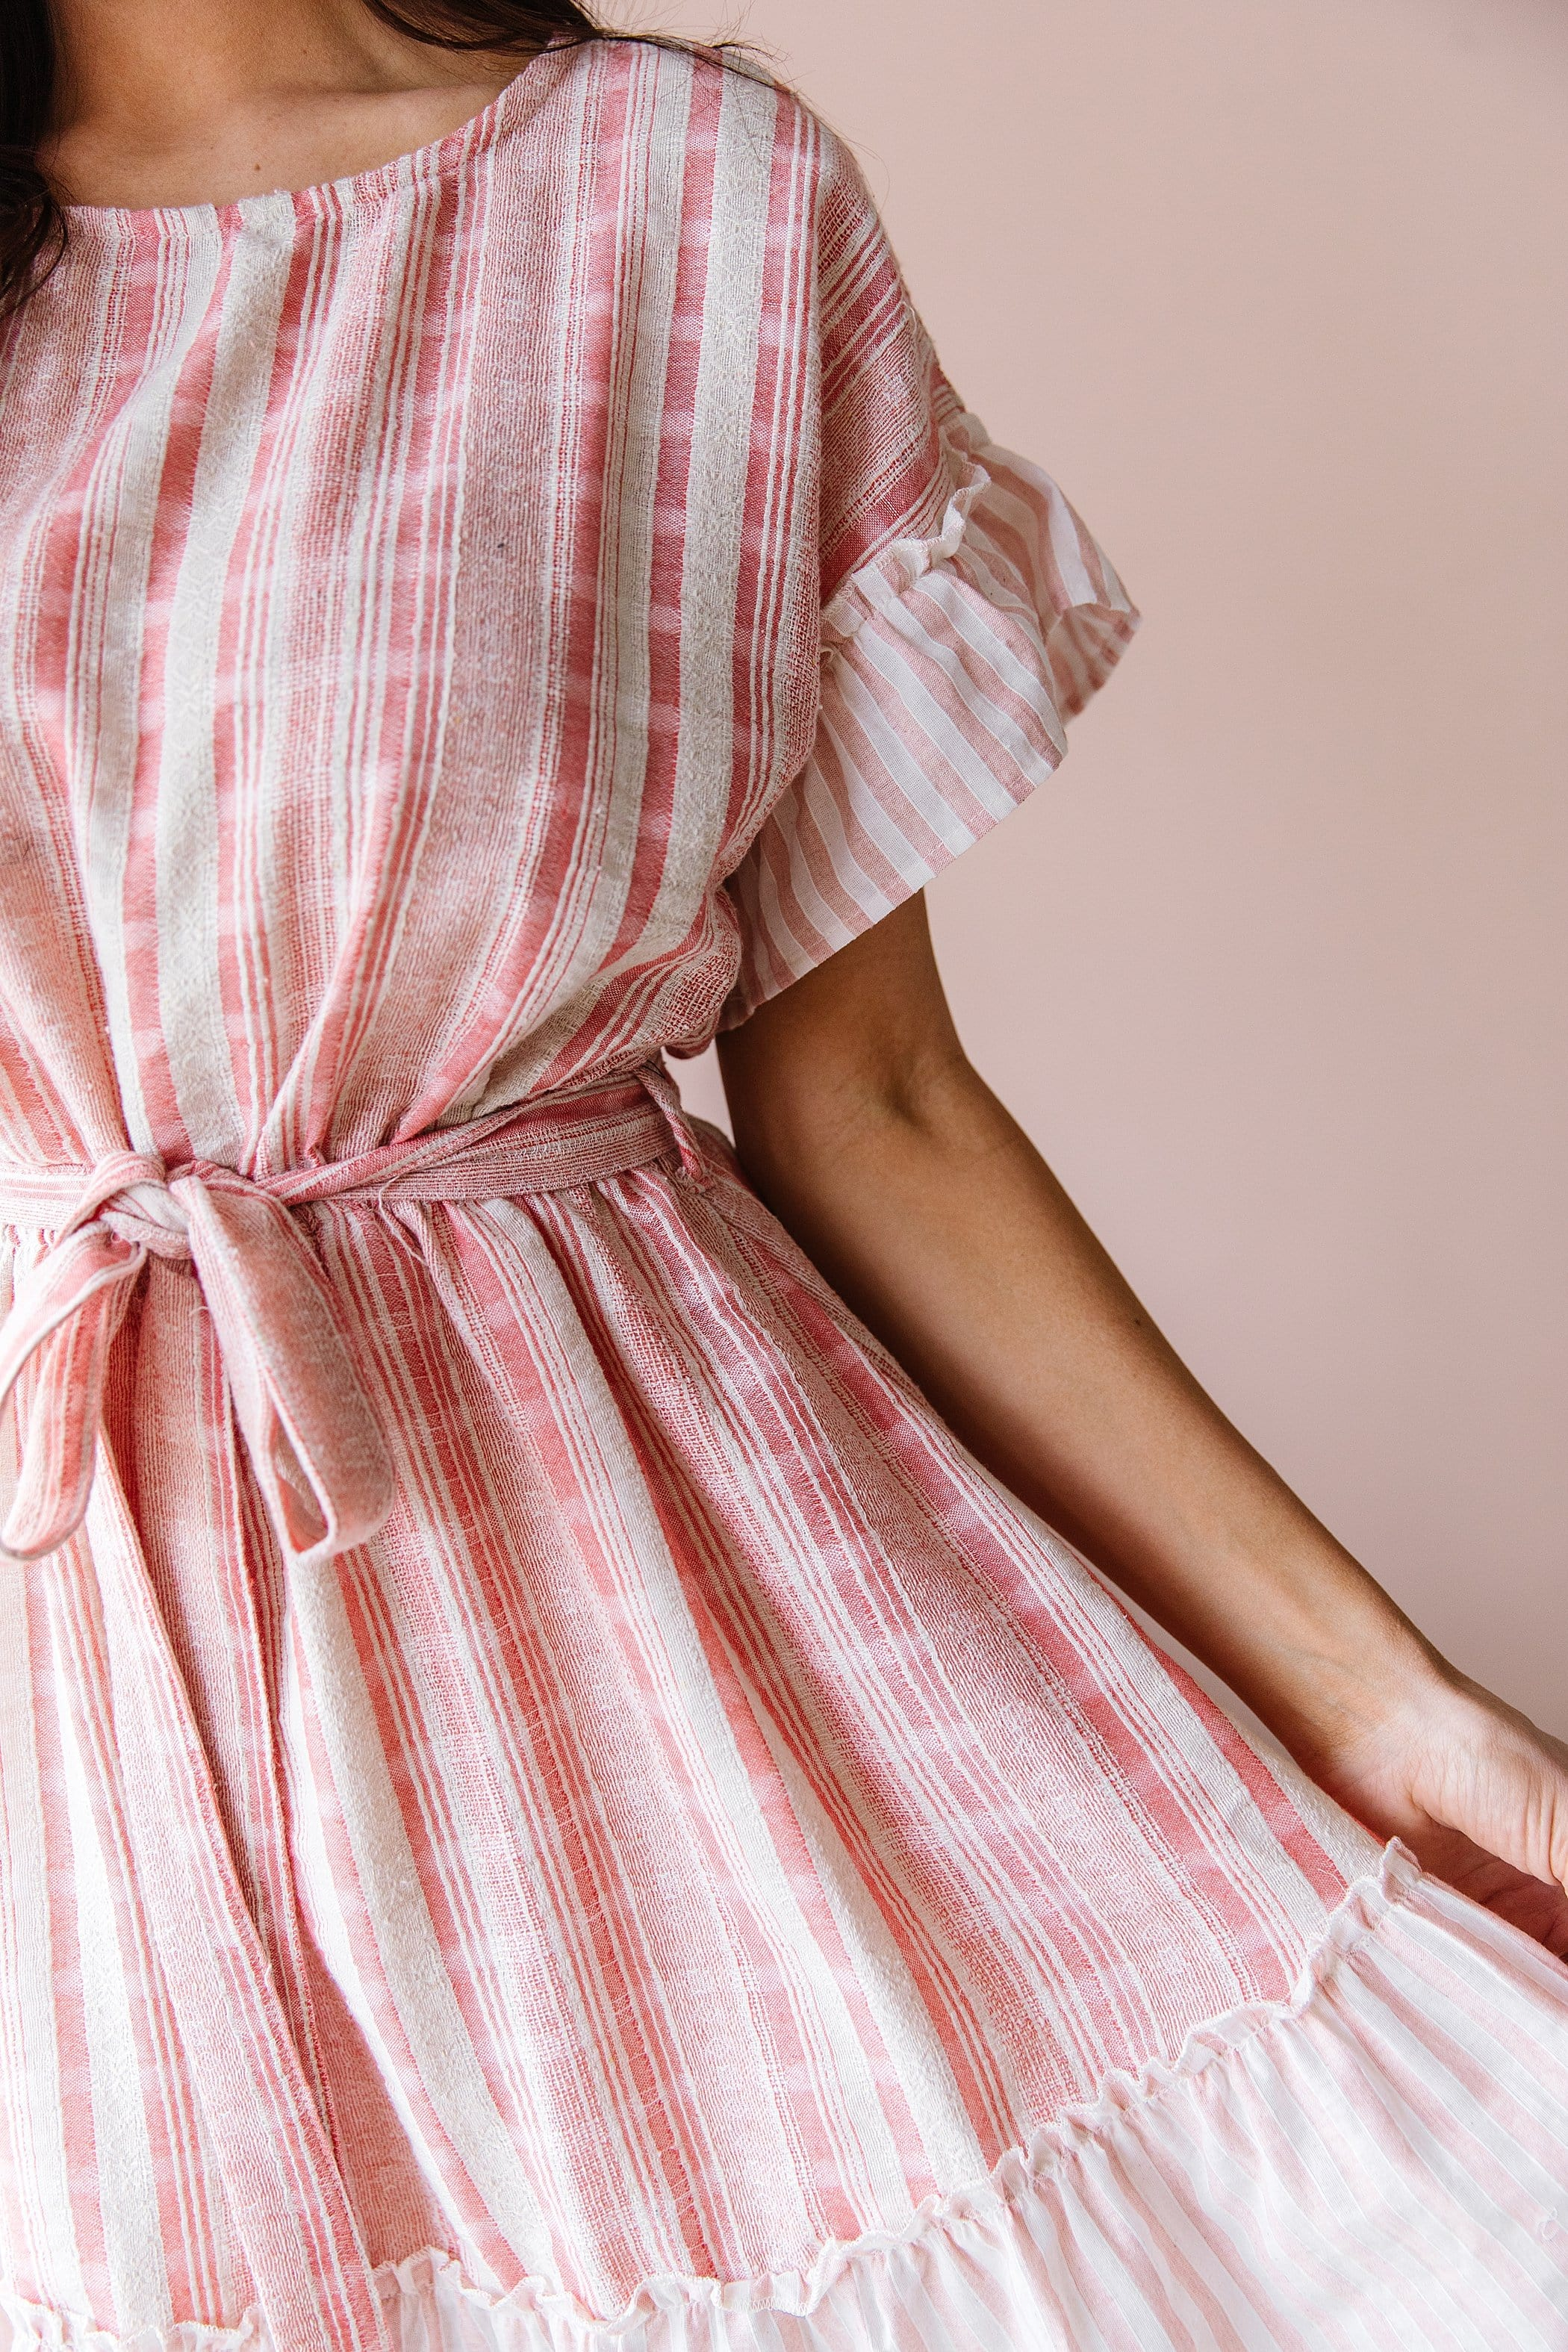 The Spring Ruffle Dress in Pink